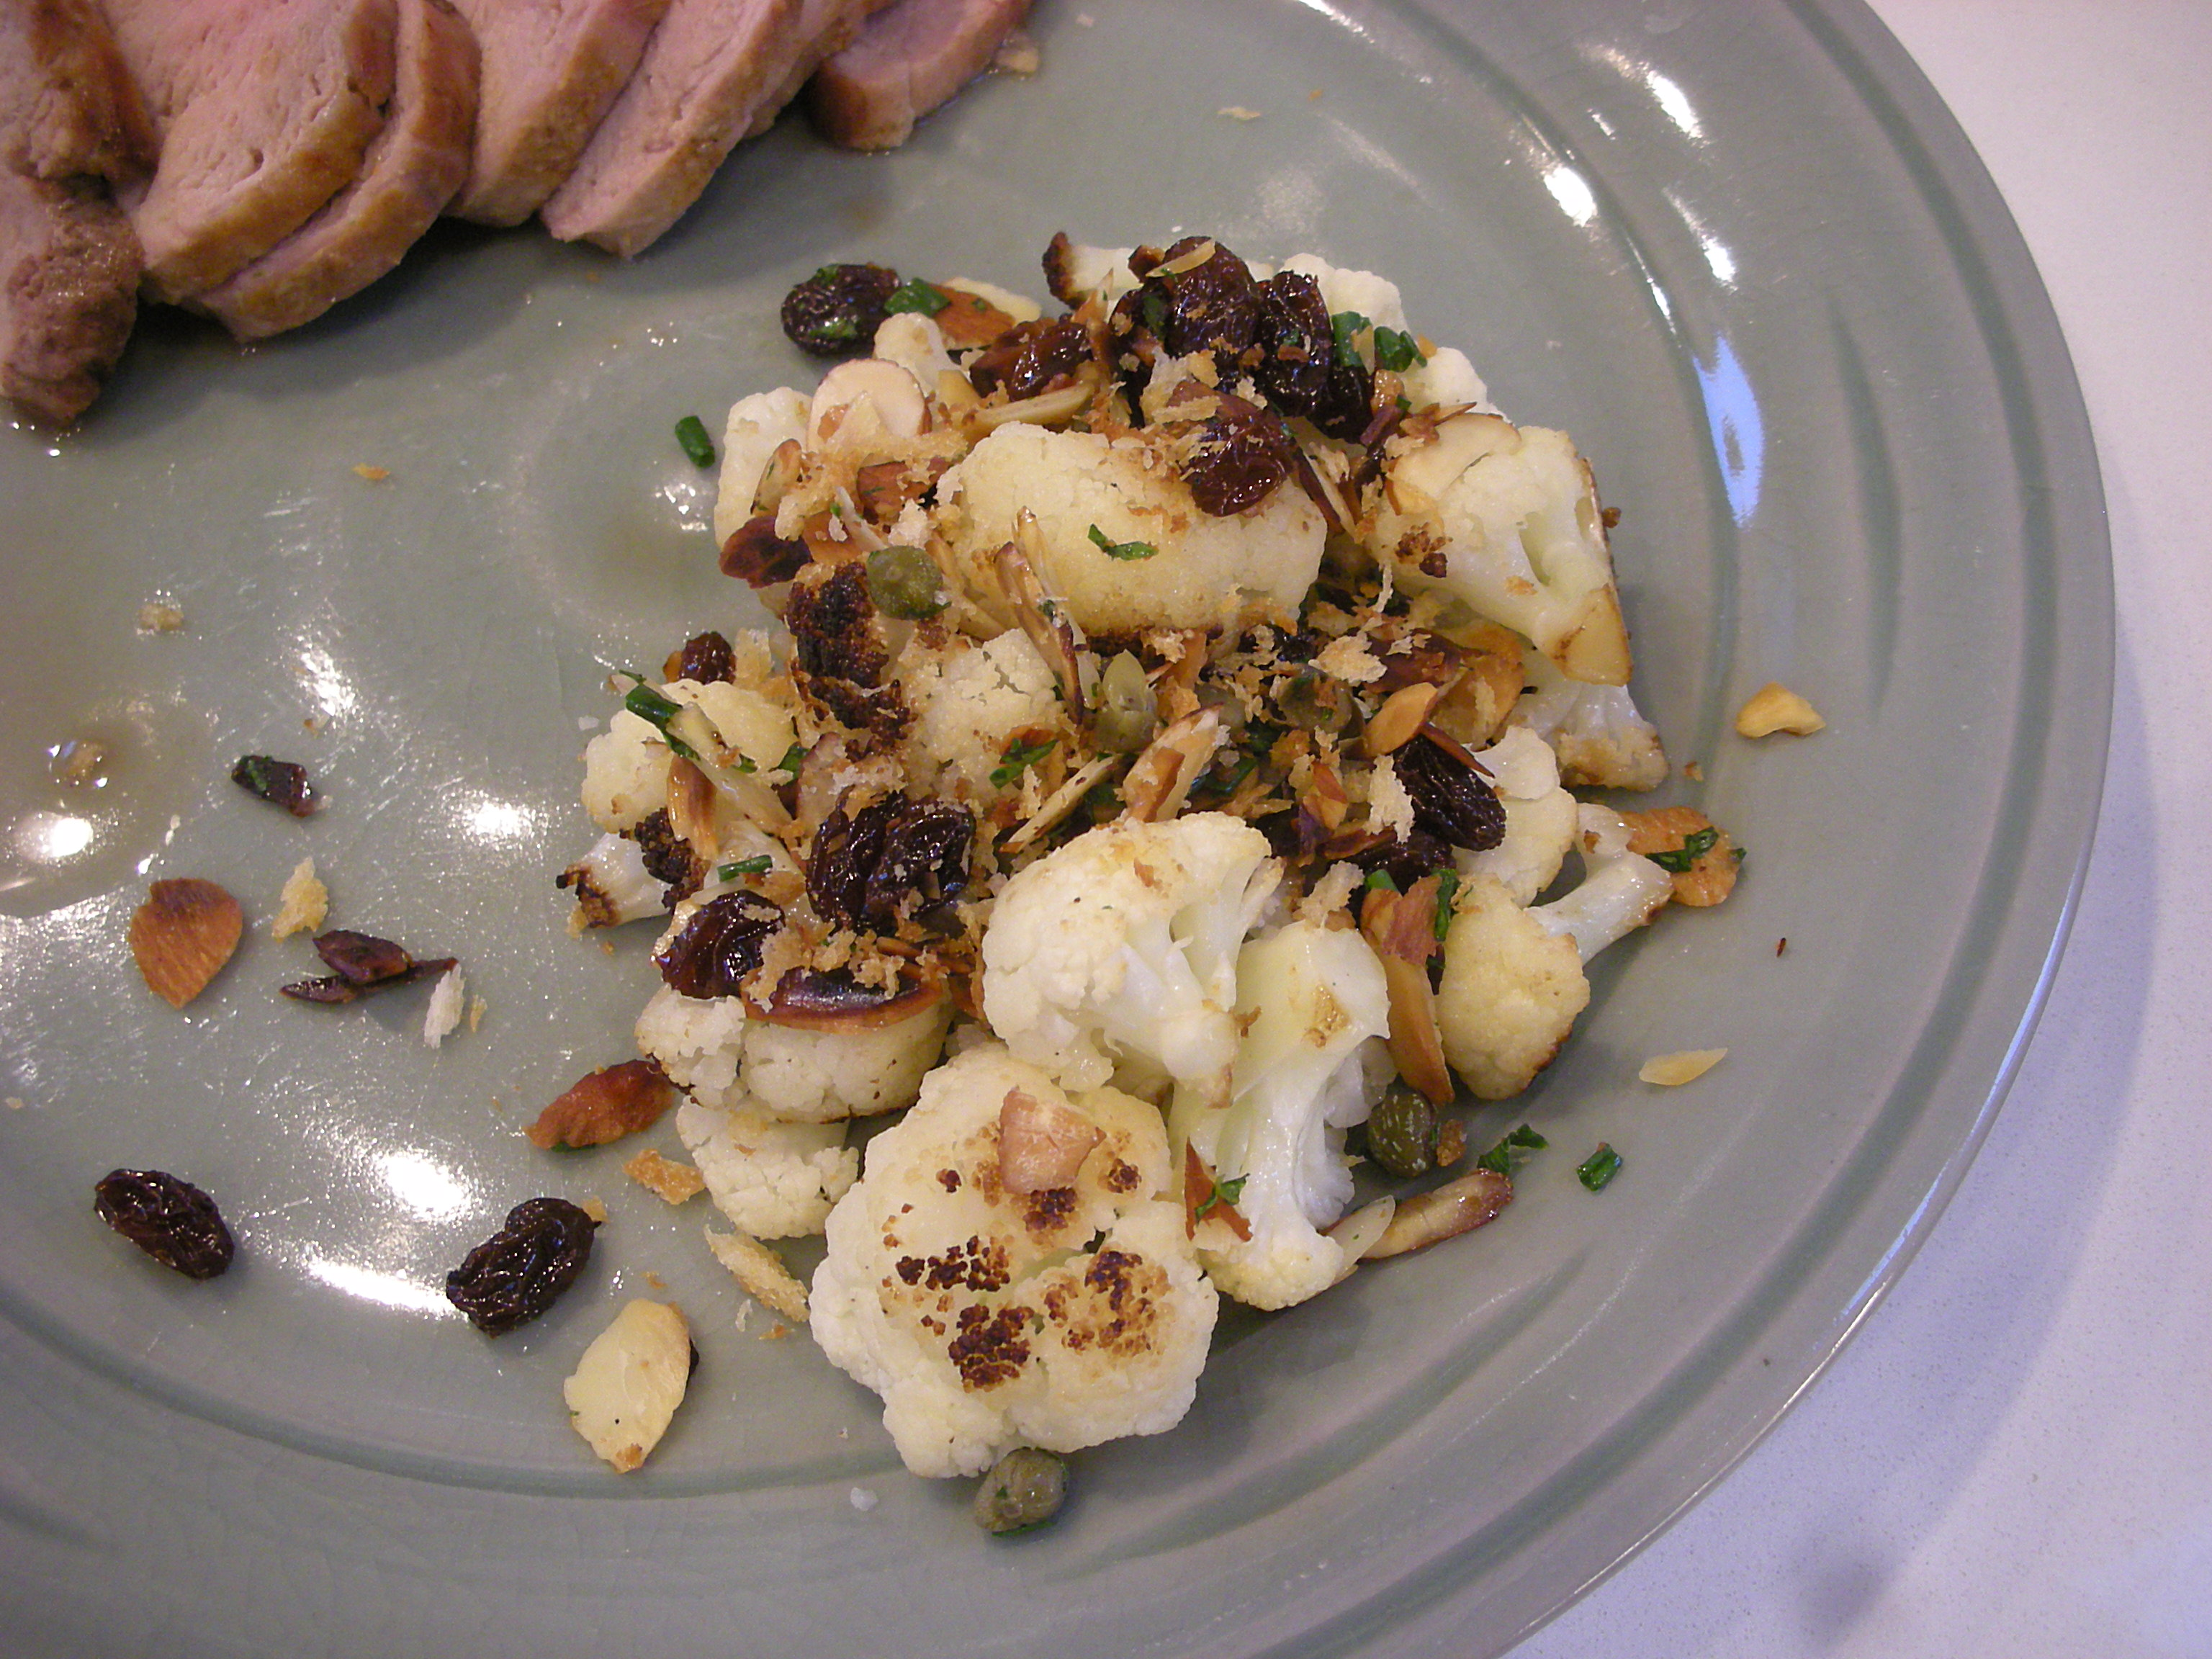 Cauliflower with Almonds, Capers, and Raisins - CookingCoOp.com